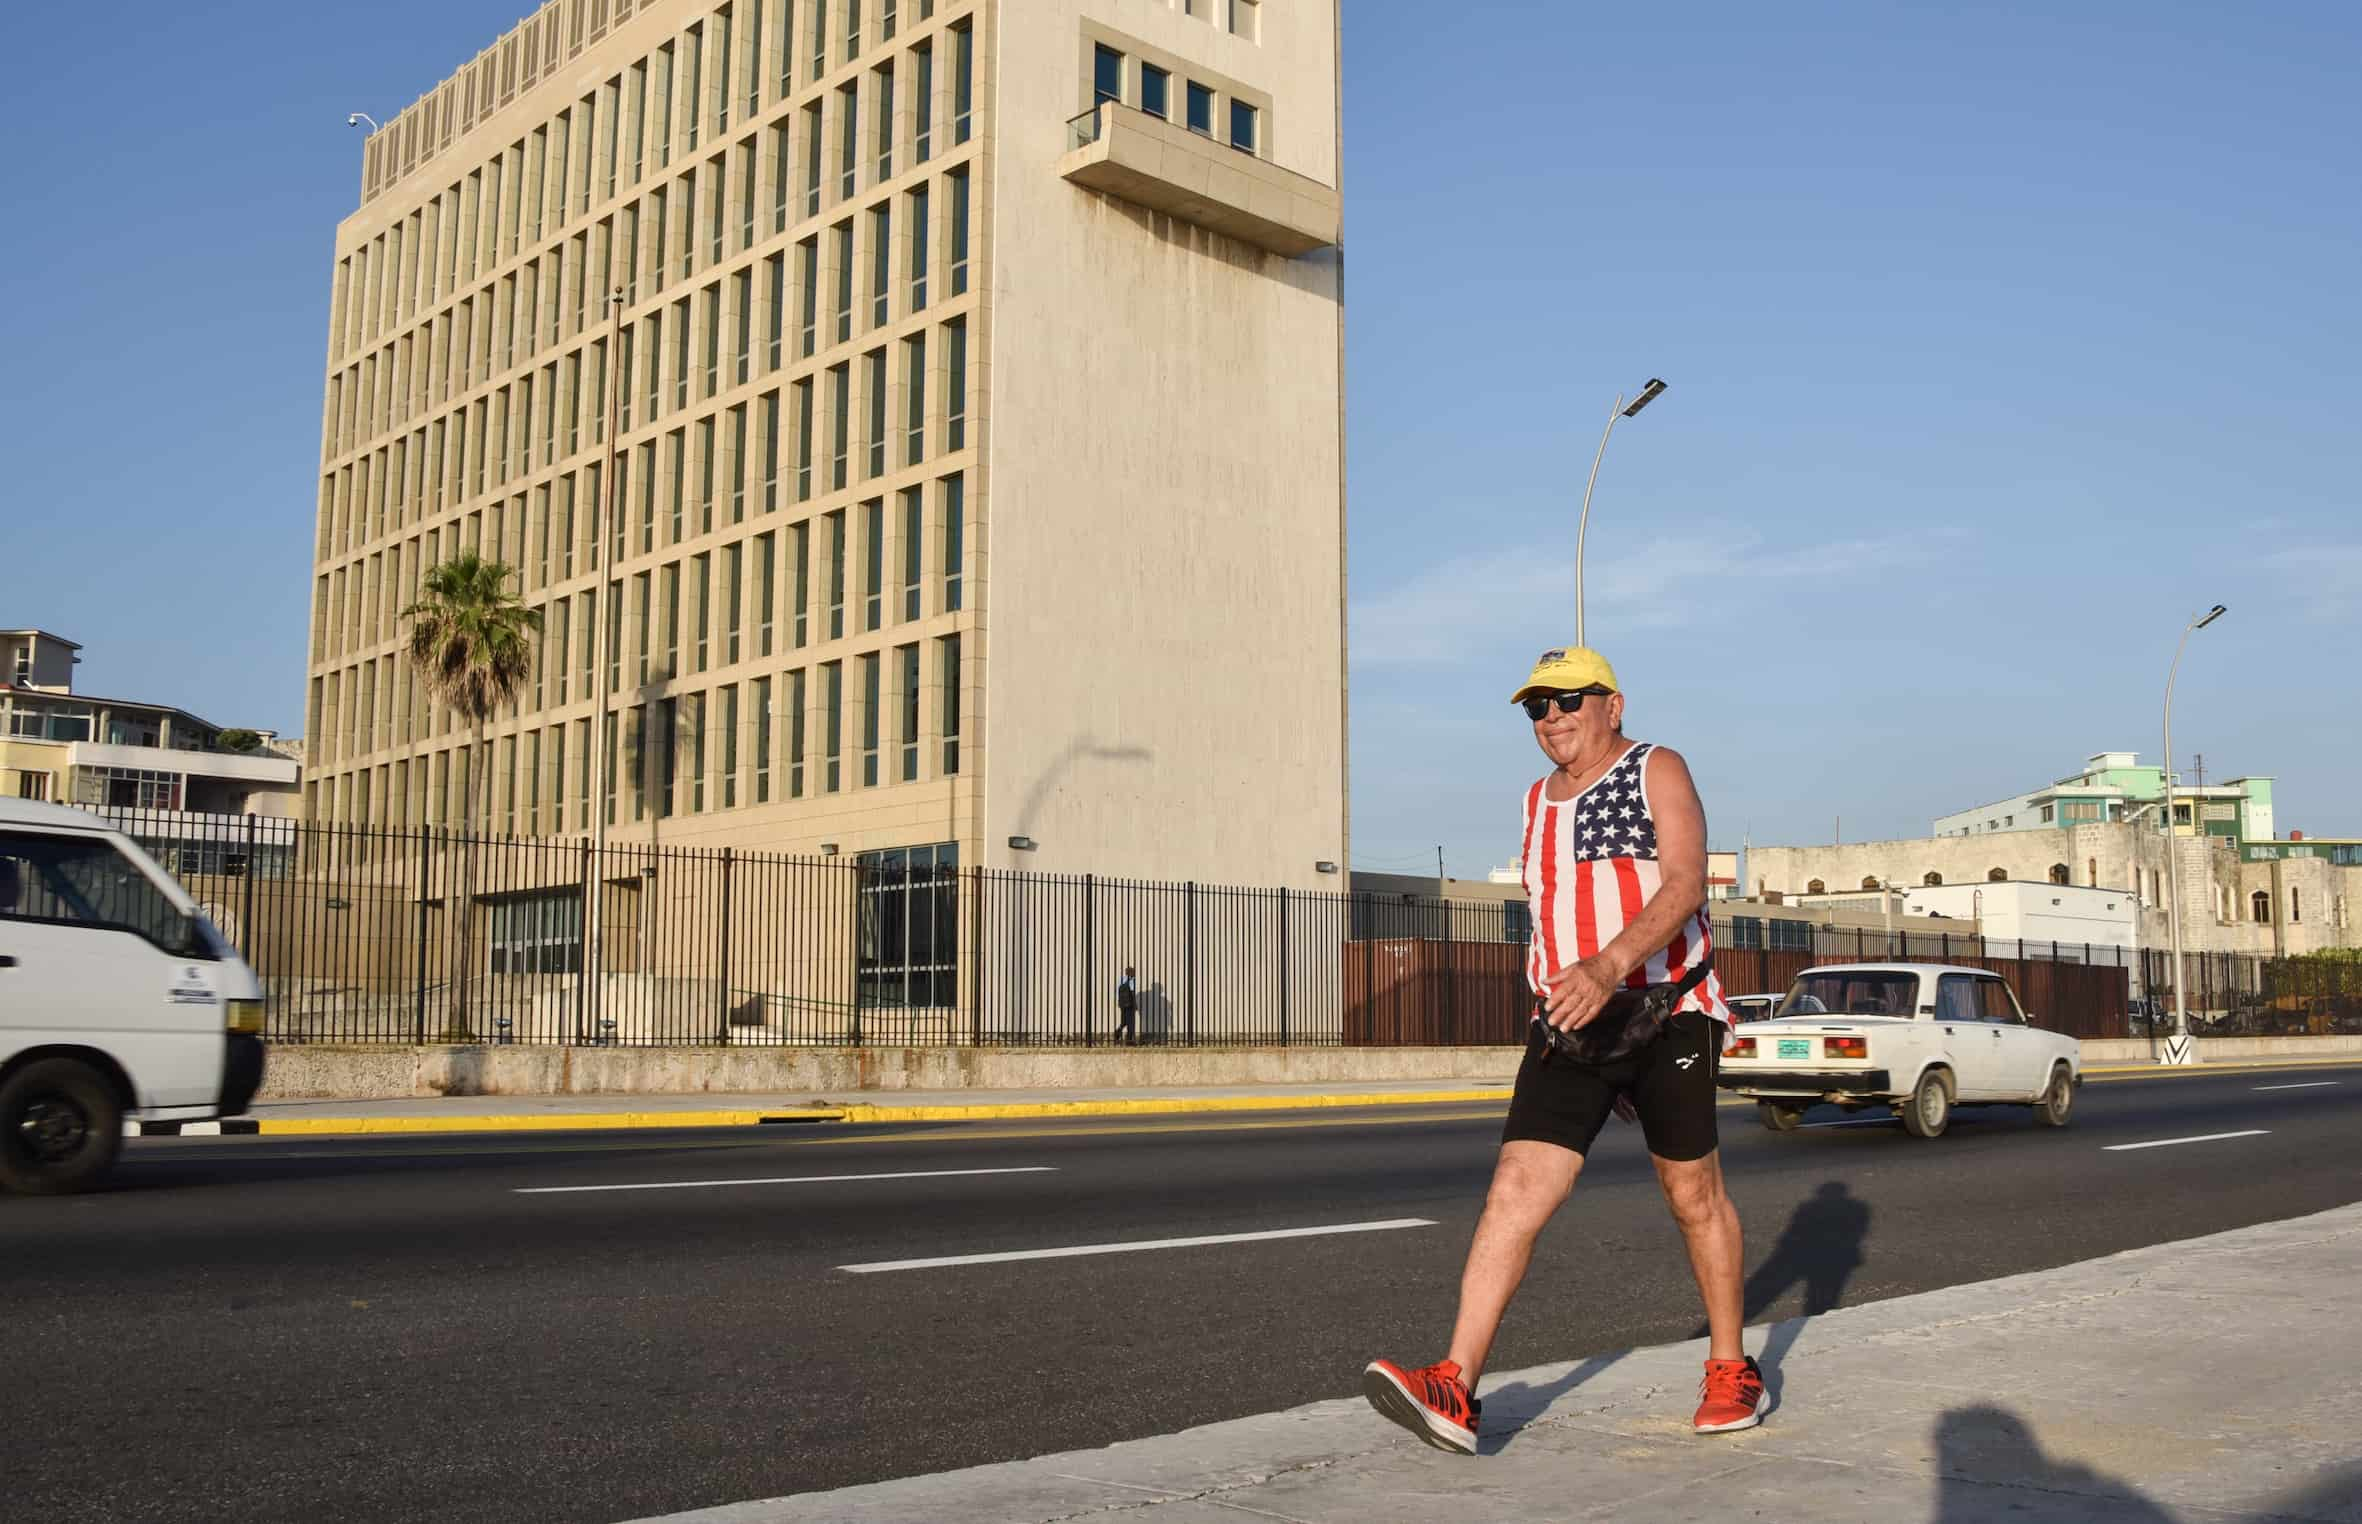 US traveler in Cuba despite Cuba embargo.